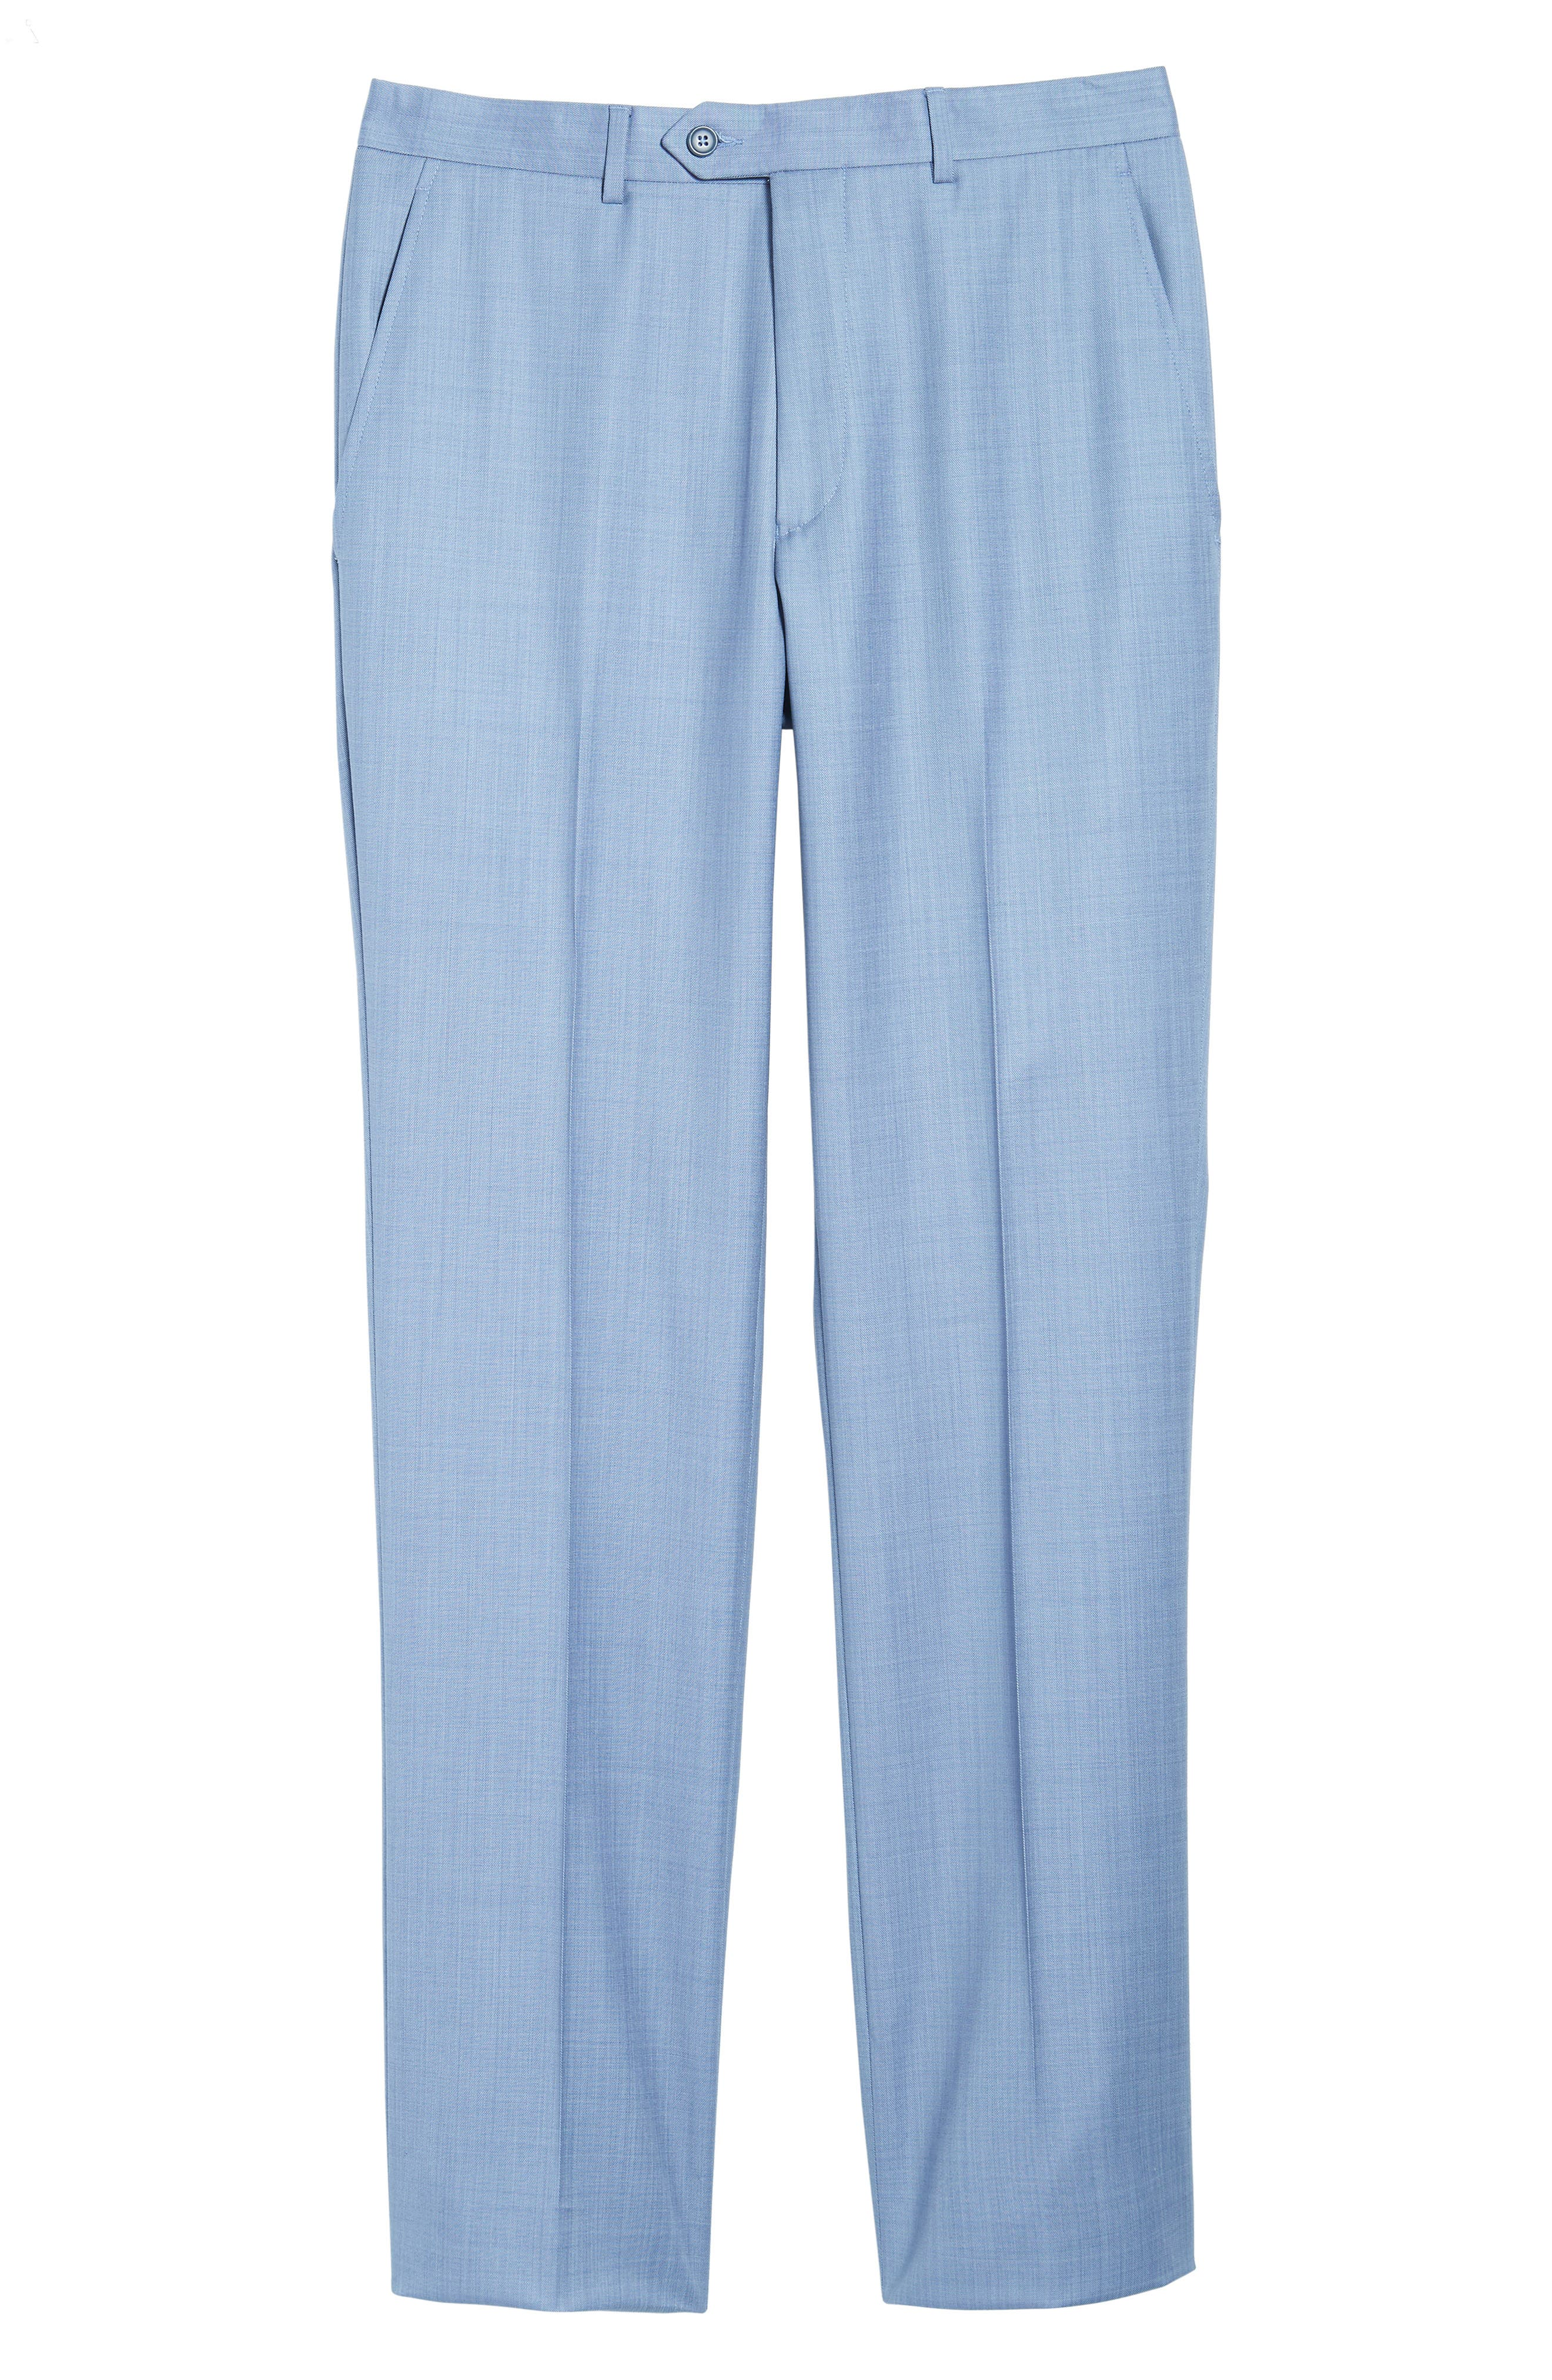 Flat Front Solid Wool Trousers,                             Alternate thumbnail 6, color,                             Soft Blue